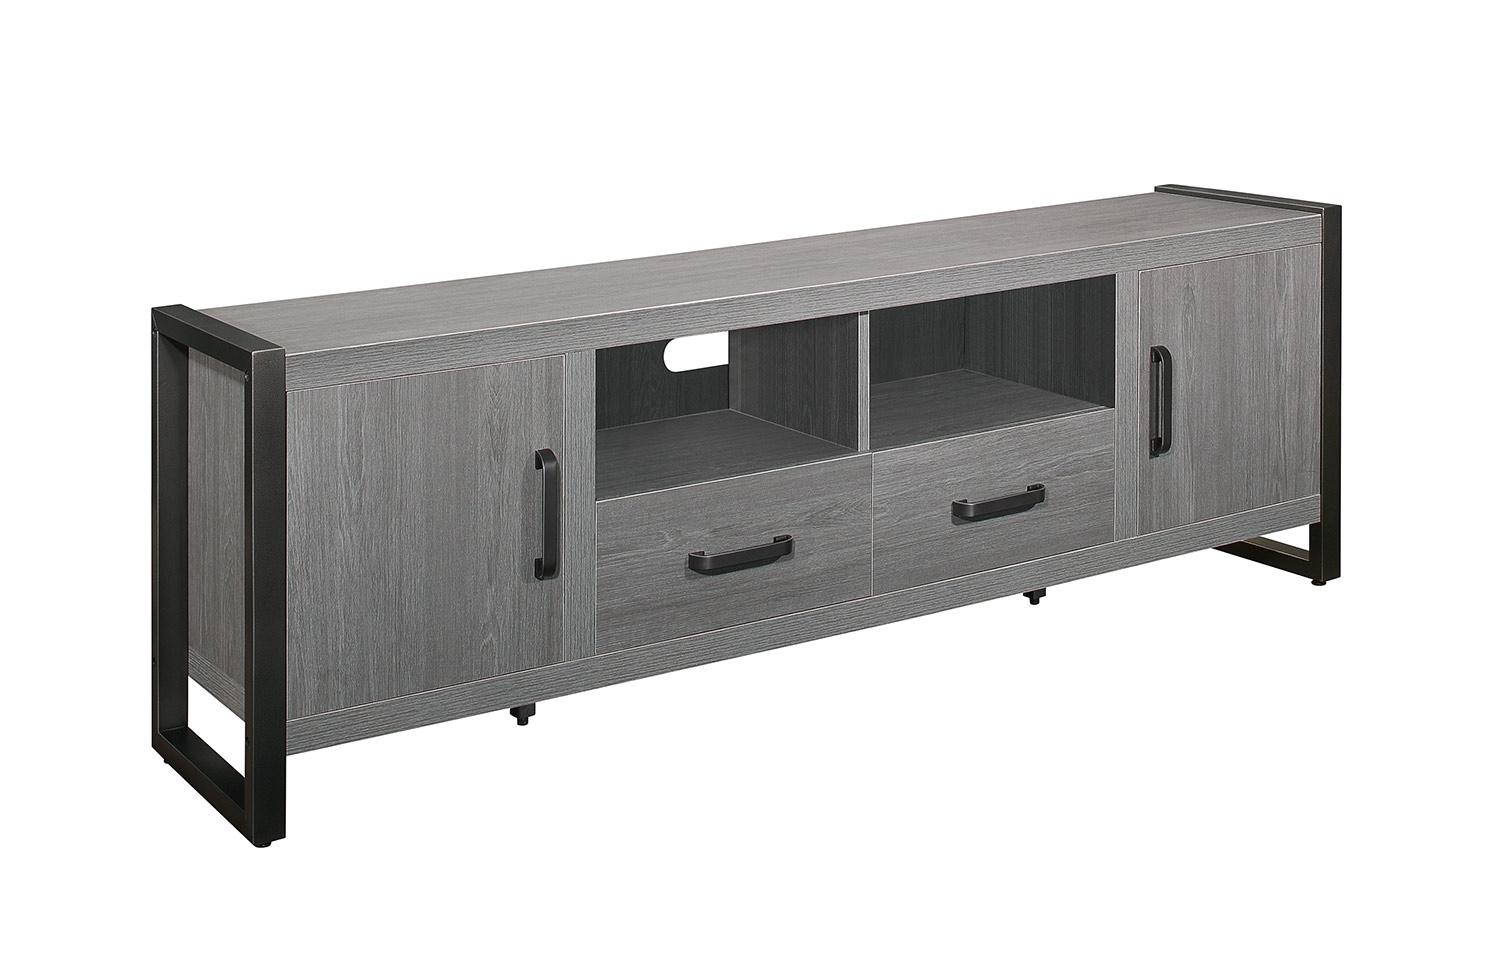 Homelegance Dogue 76-inch TV Stand - Gunmetal - Gray